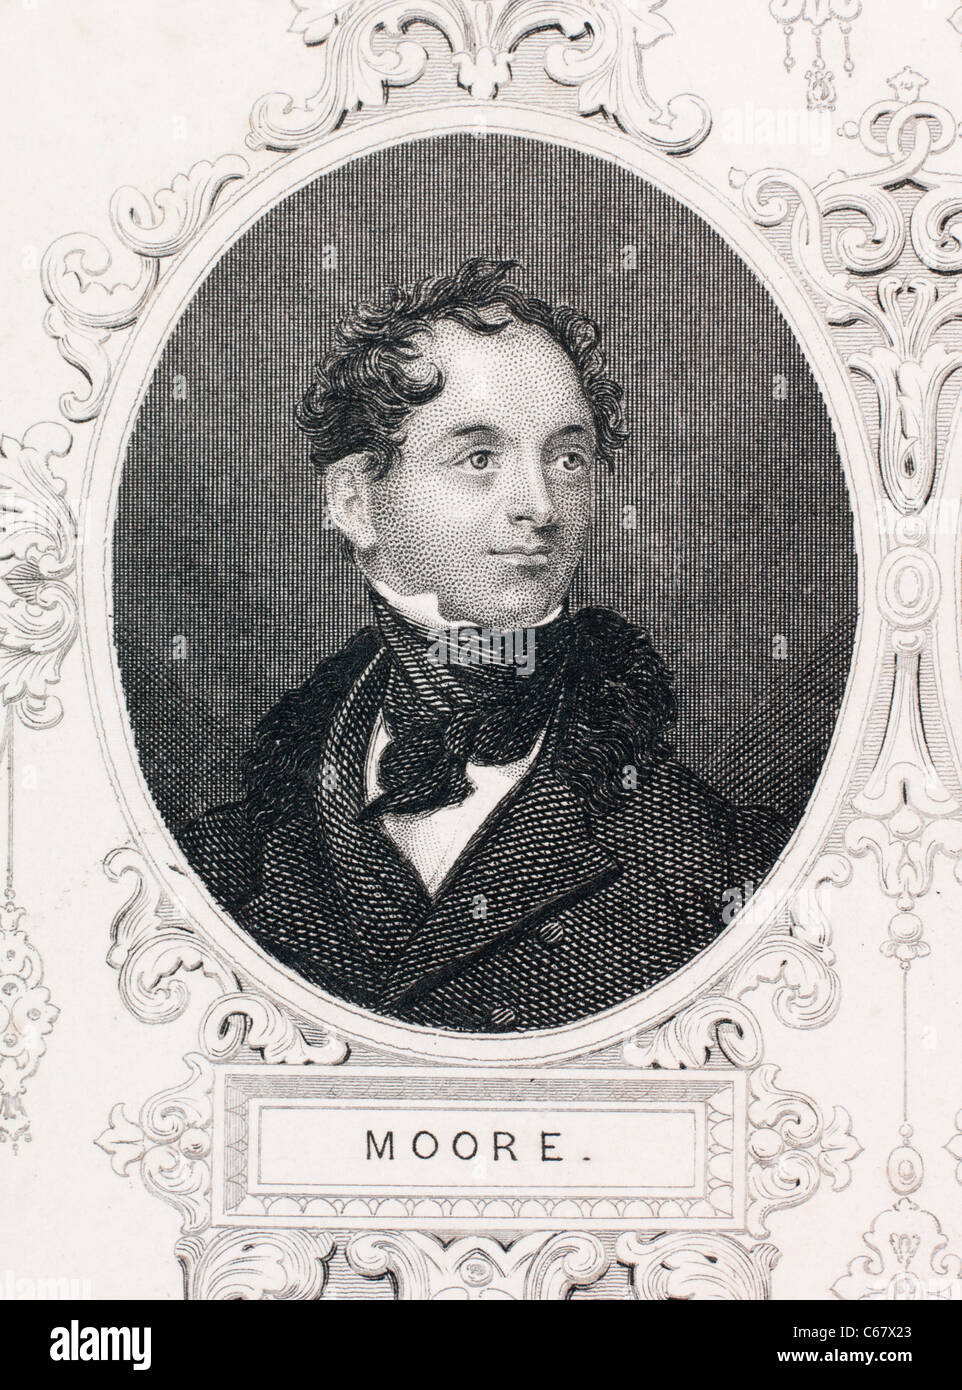 Thomas Moore, Irish poet and songwriter. 'The Last Rose of Summer' and other famous Irish songs around 1800 - Stock Image